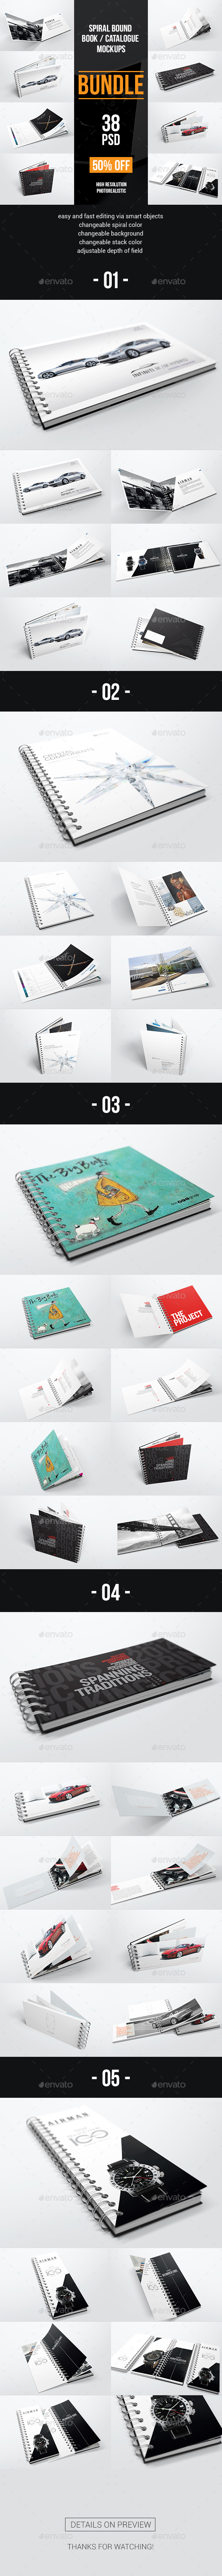 GraphicRiver Spiral Bound Book Catalogue Bundle Mockups 20687683